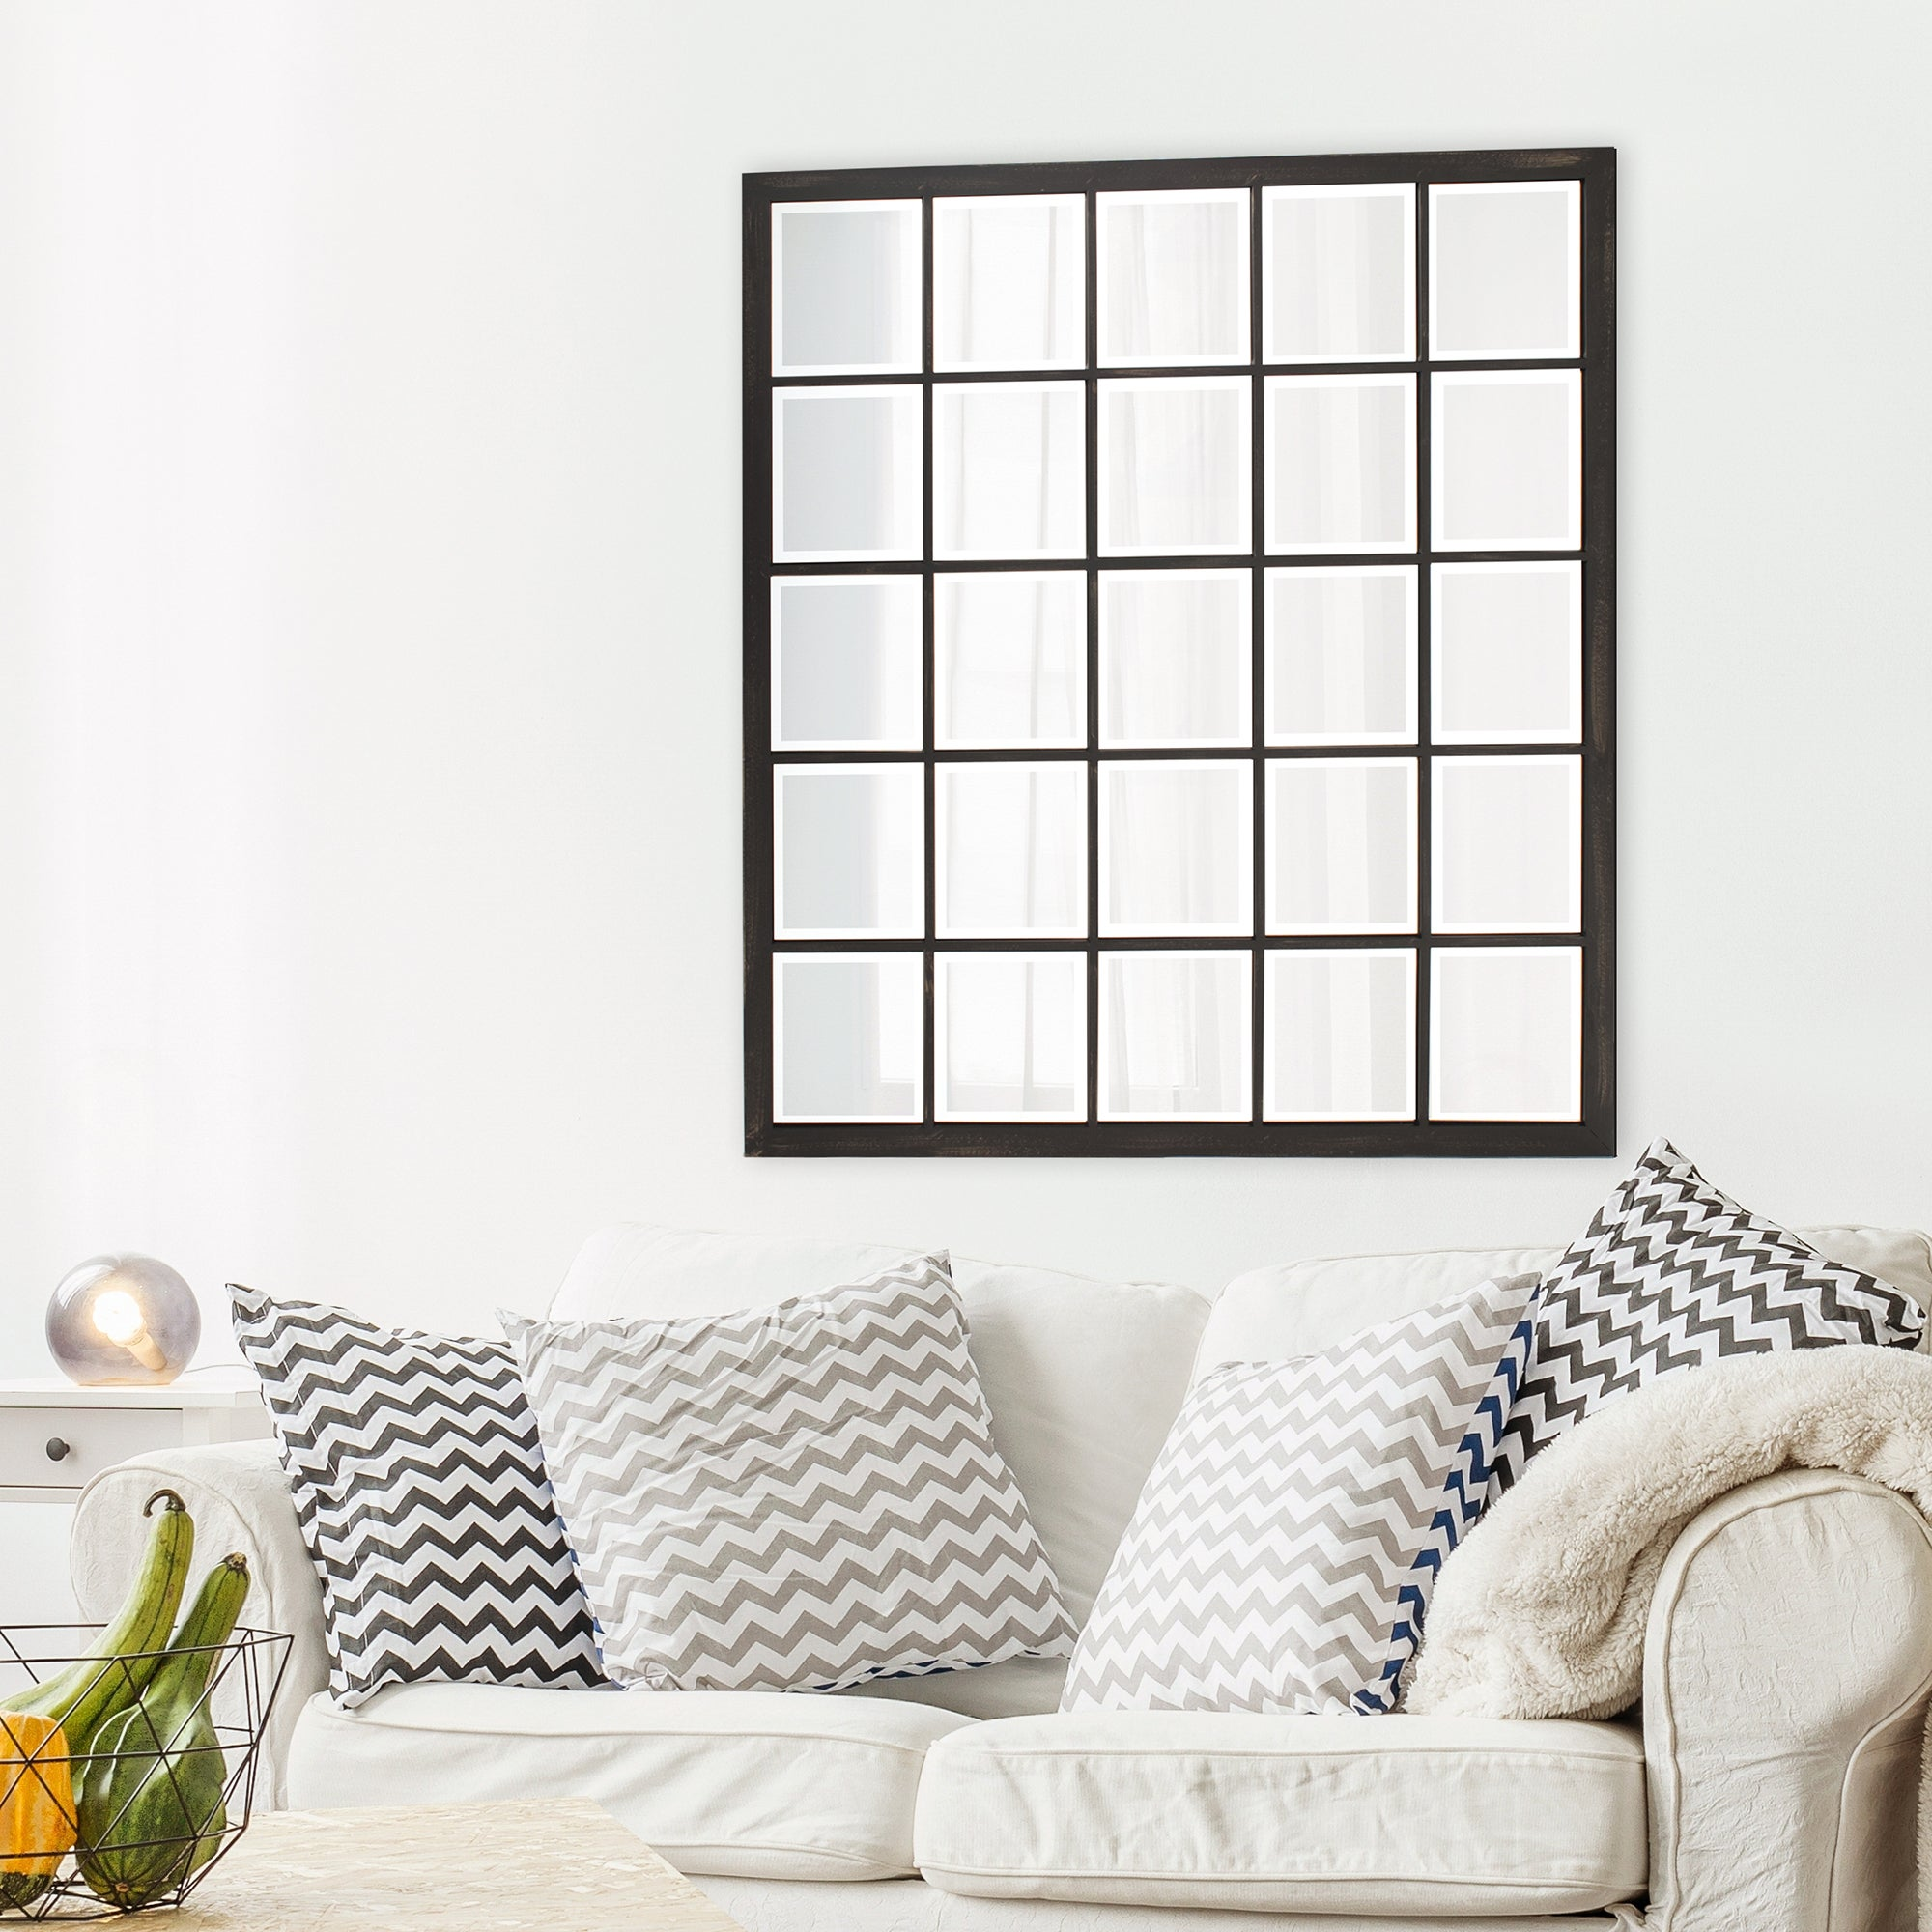 Buy Mirrors Online At Overstock.com | Our Best Decorative Accessories Deals